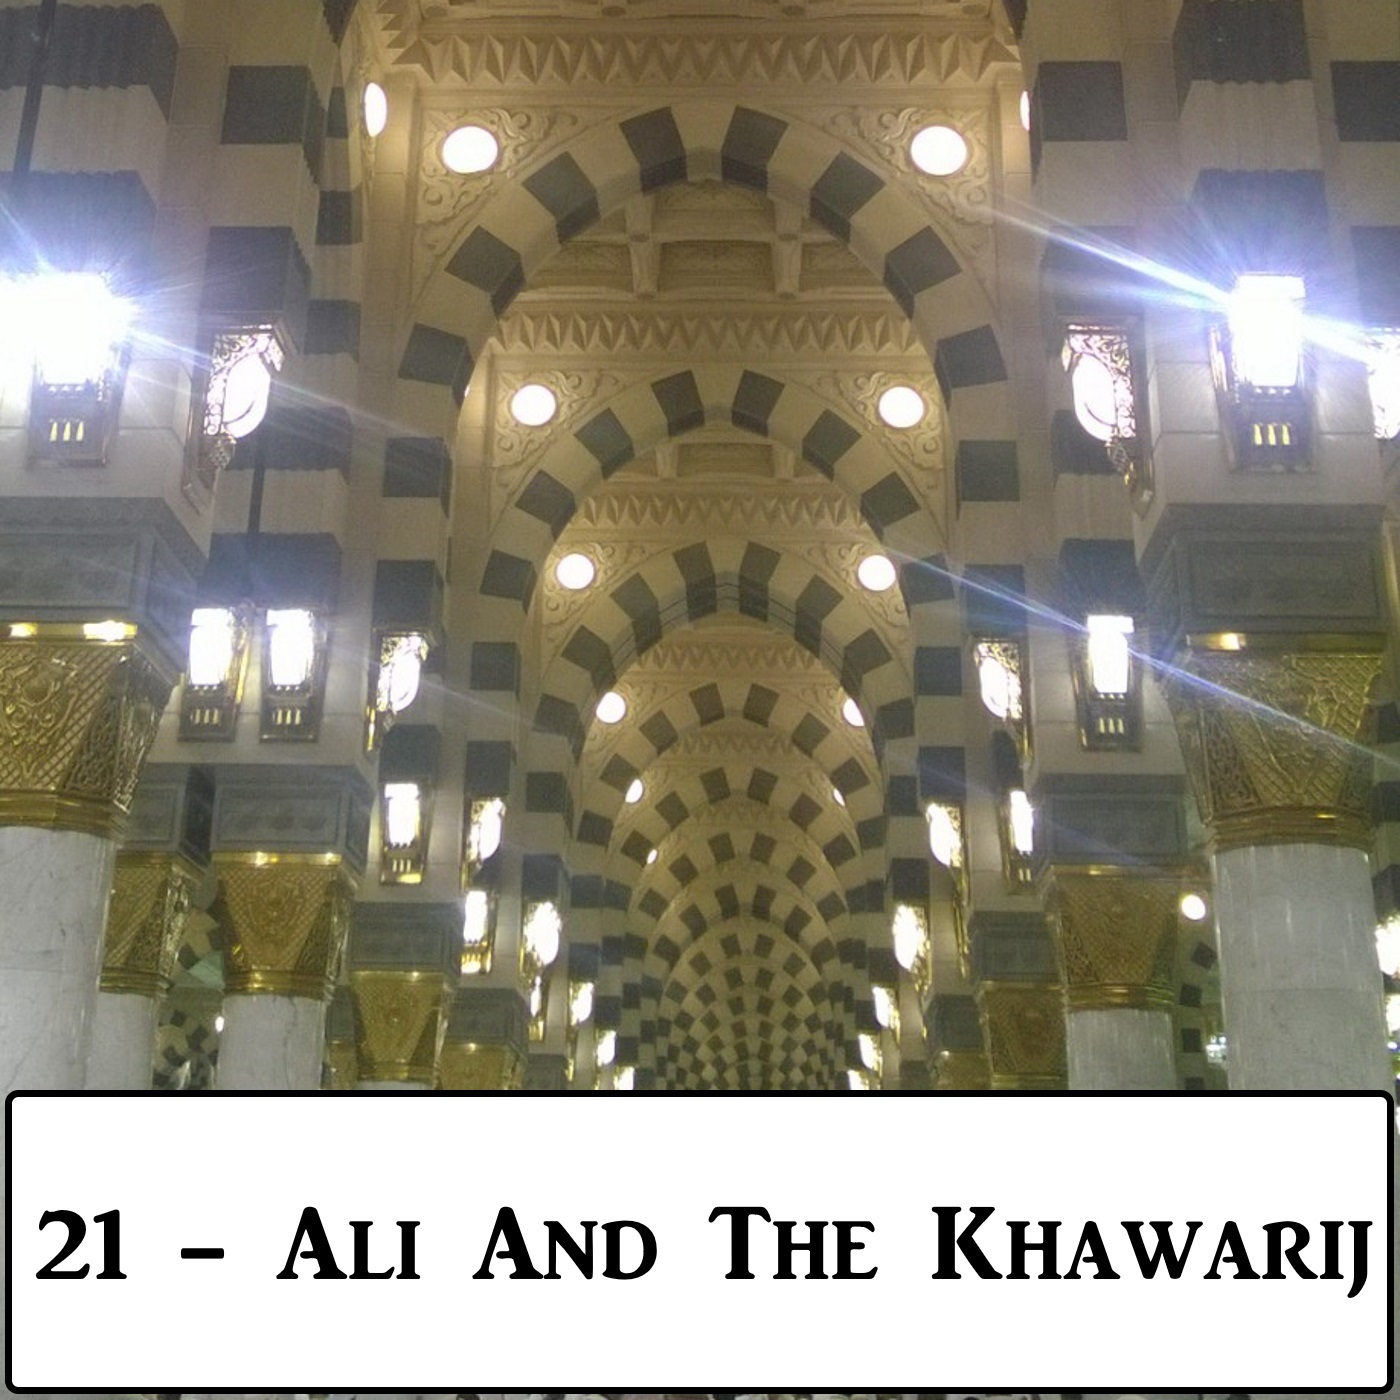 2-21: Ali And The Khawarij